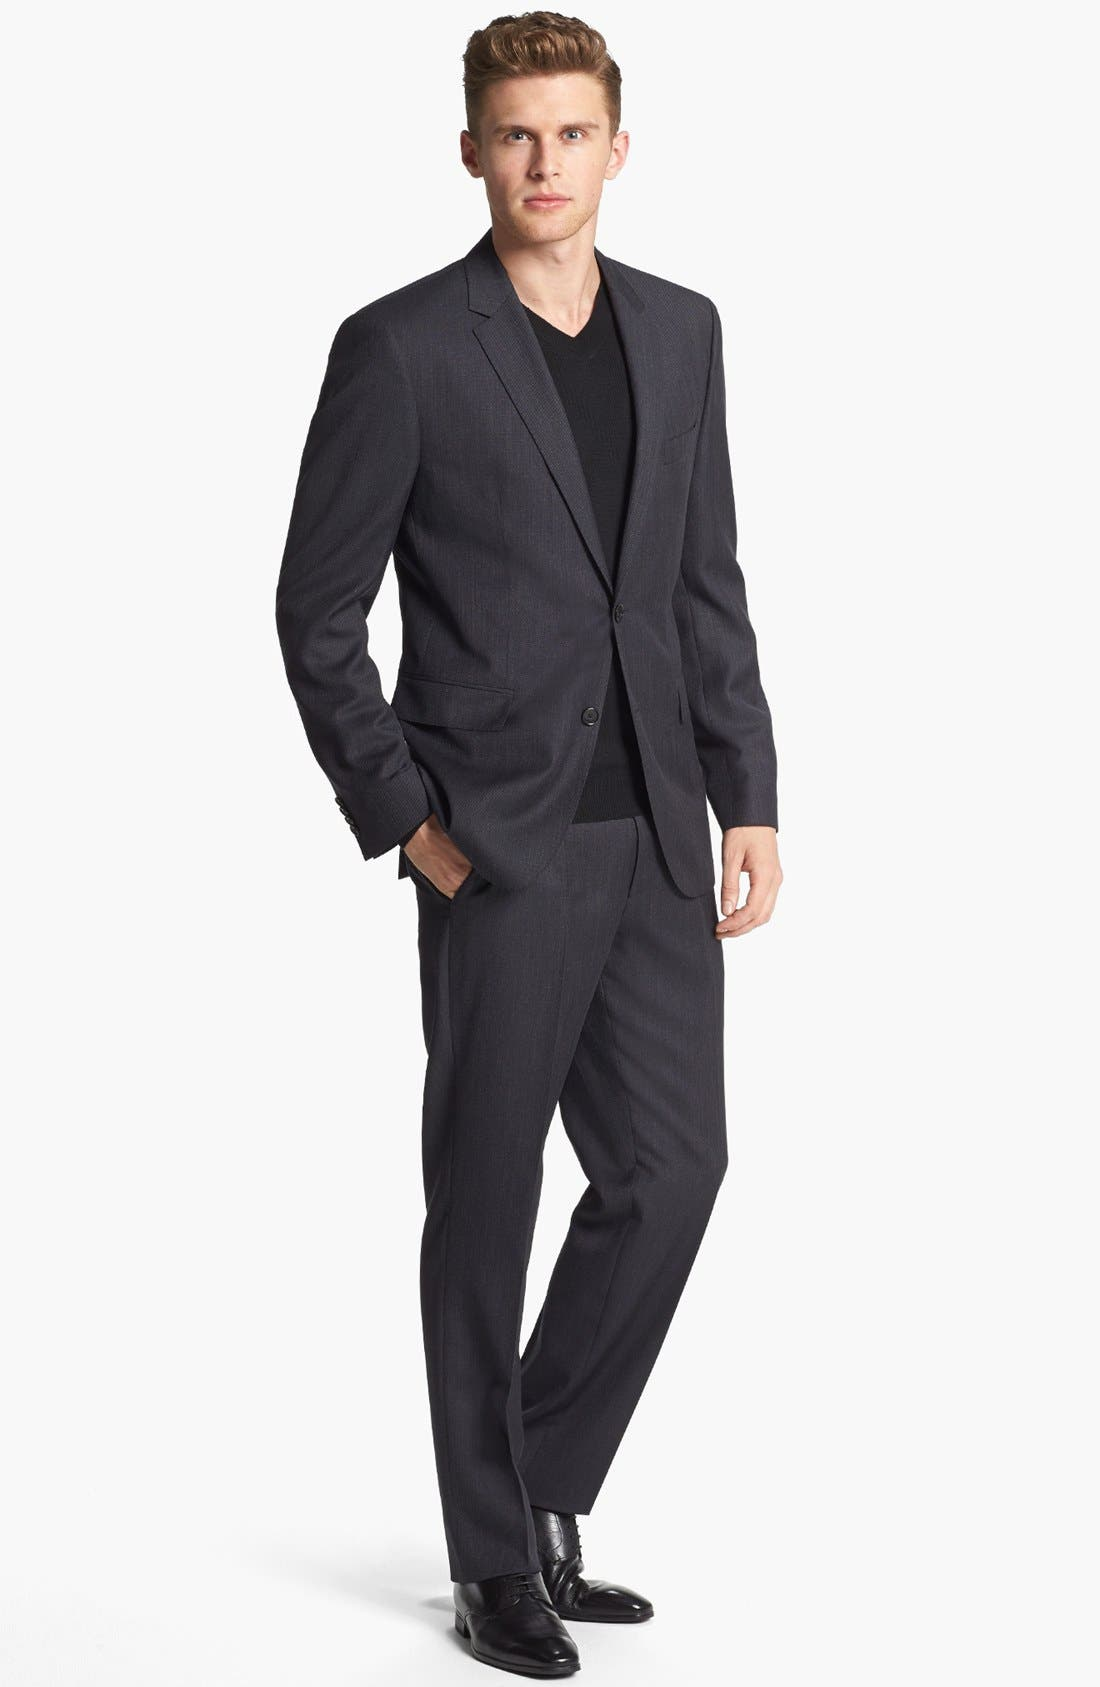 Main Image - BOSS HUGO BOSS 'Keys/Shaft' Trim Fit Wool Suit